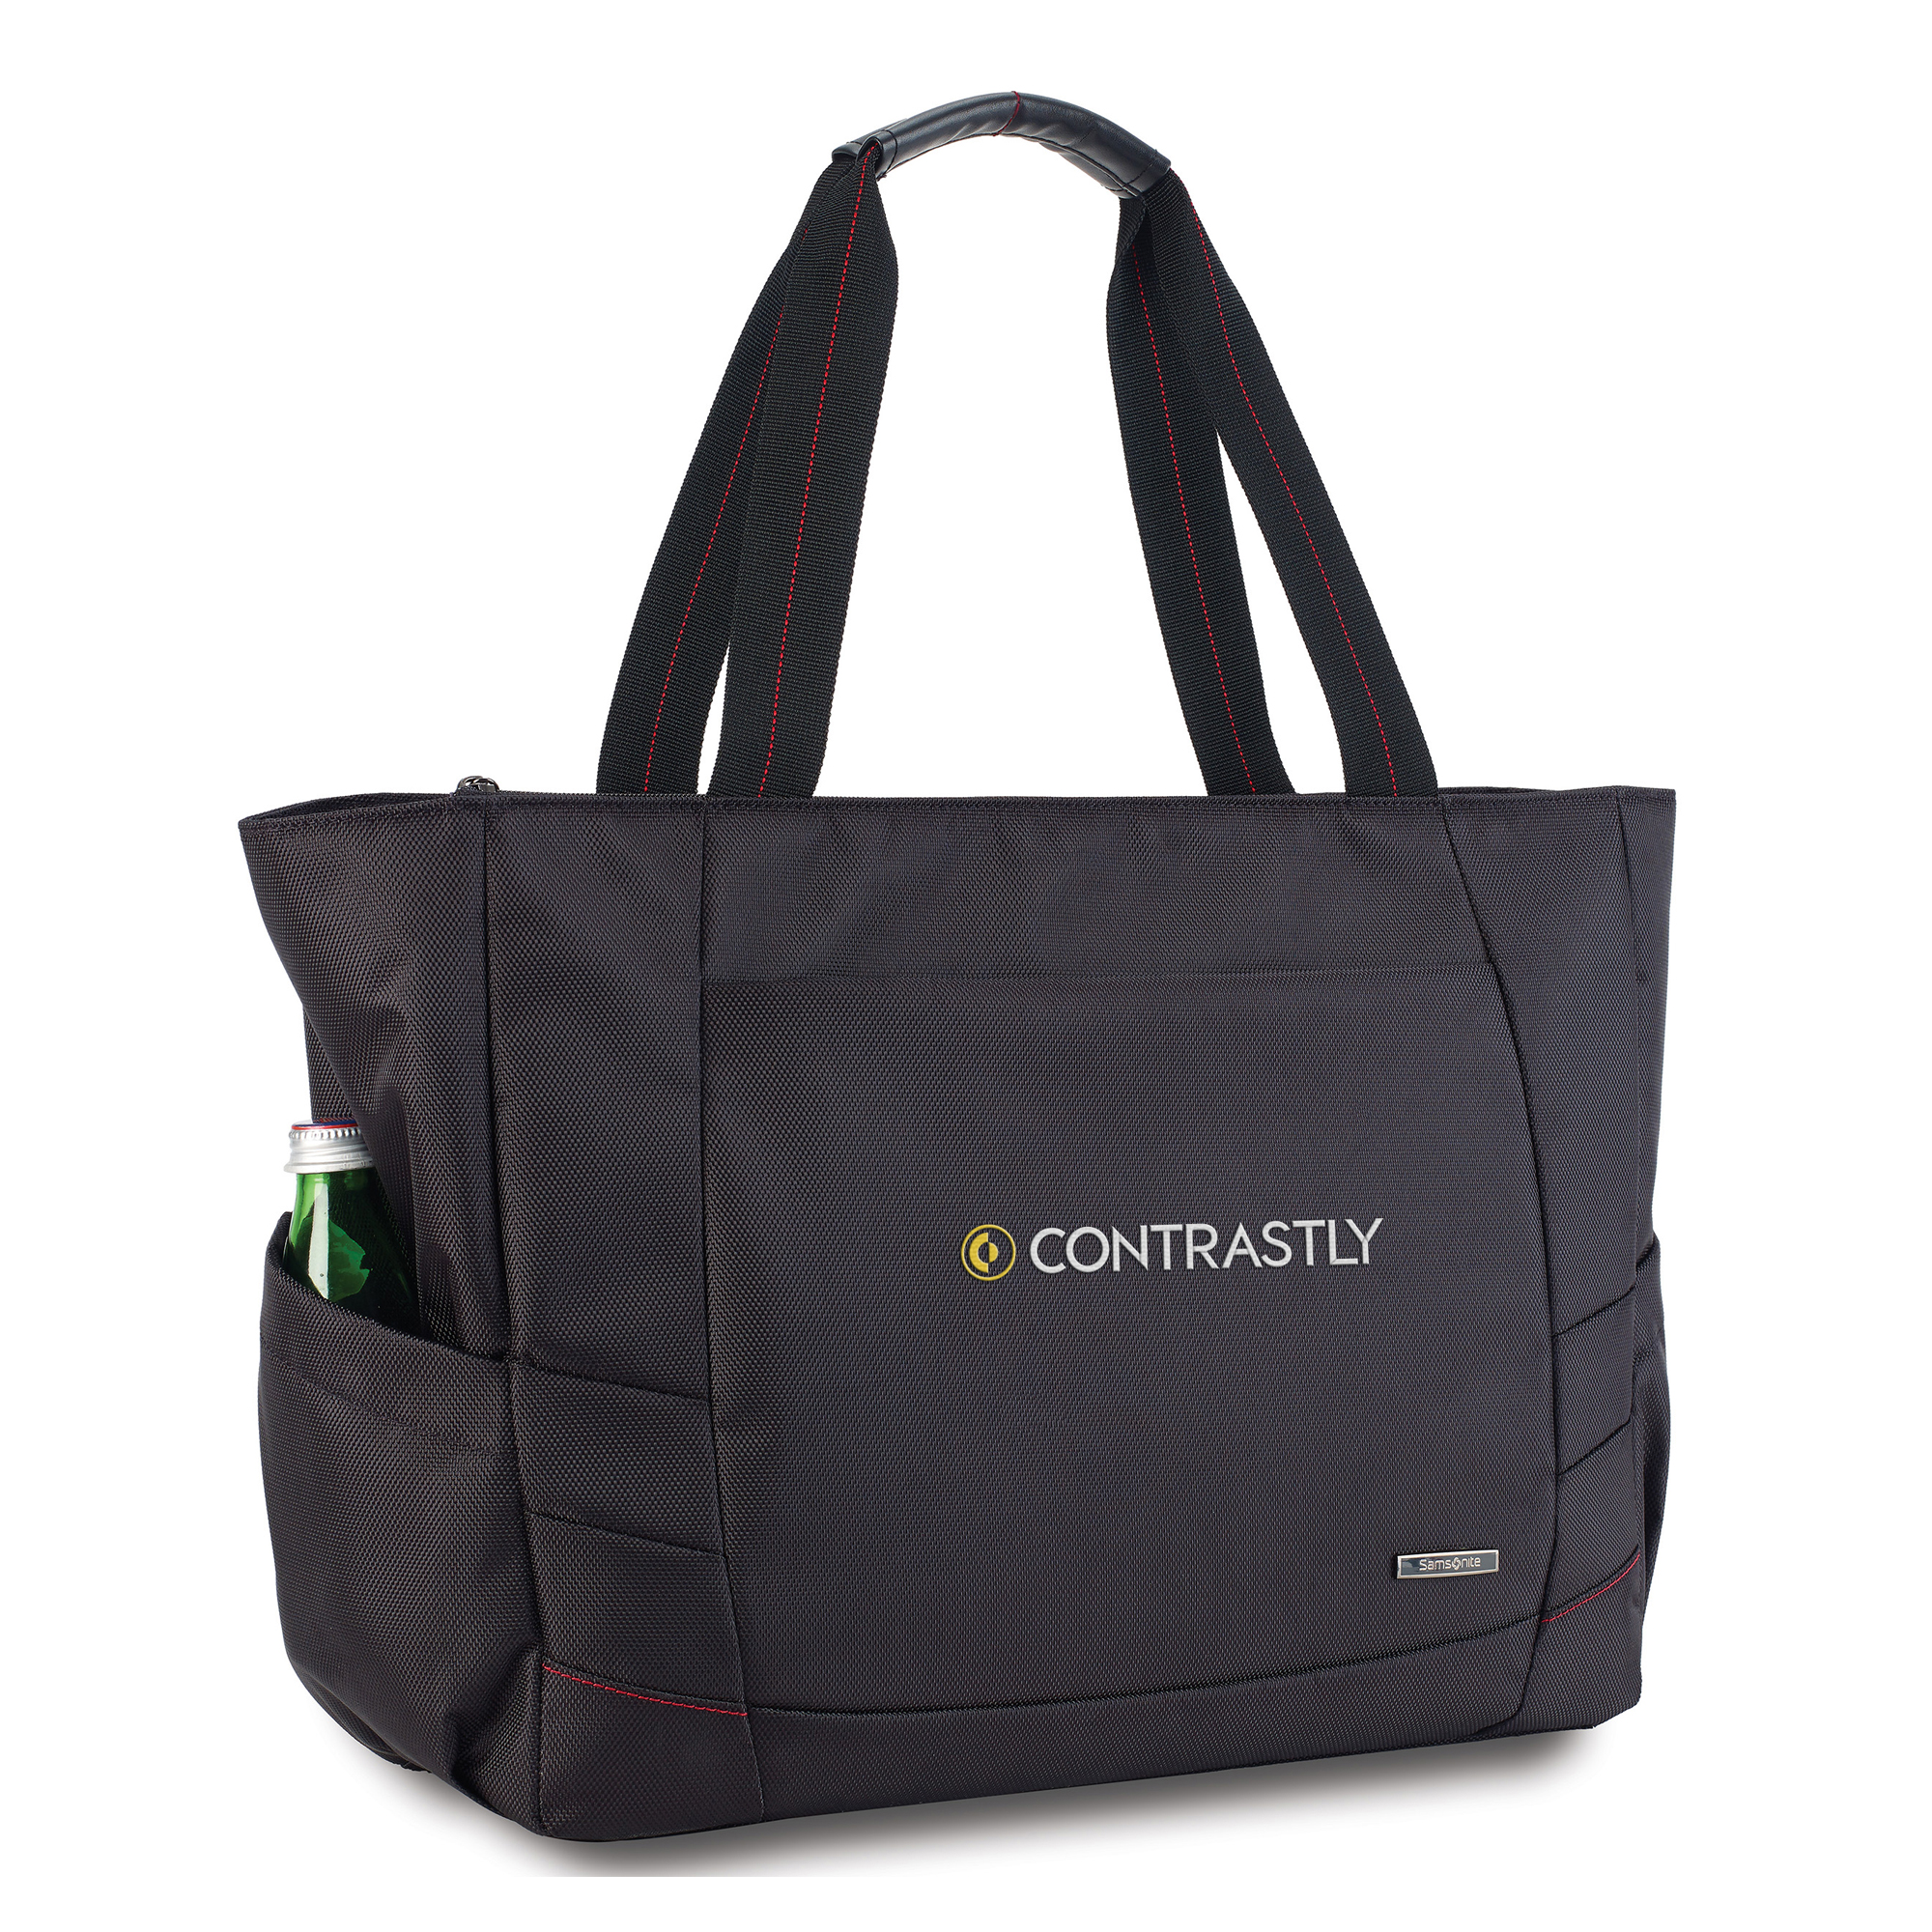 This tote was designed to fit into the exsisting Xenon collection.